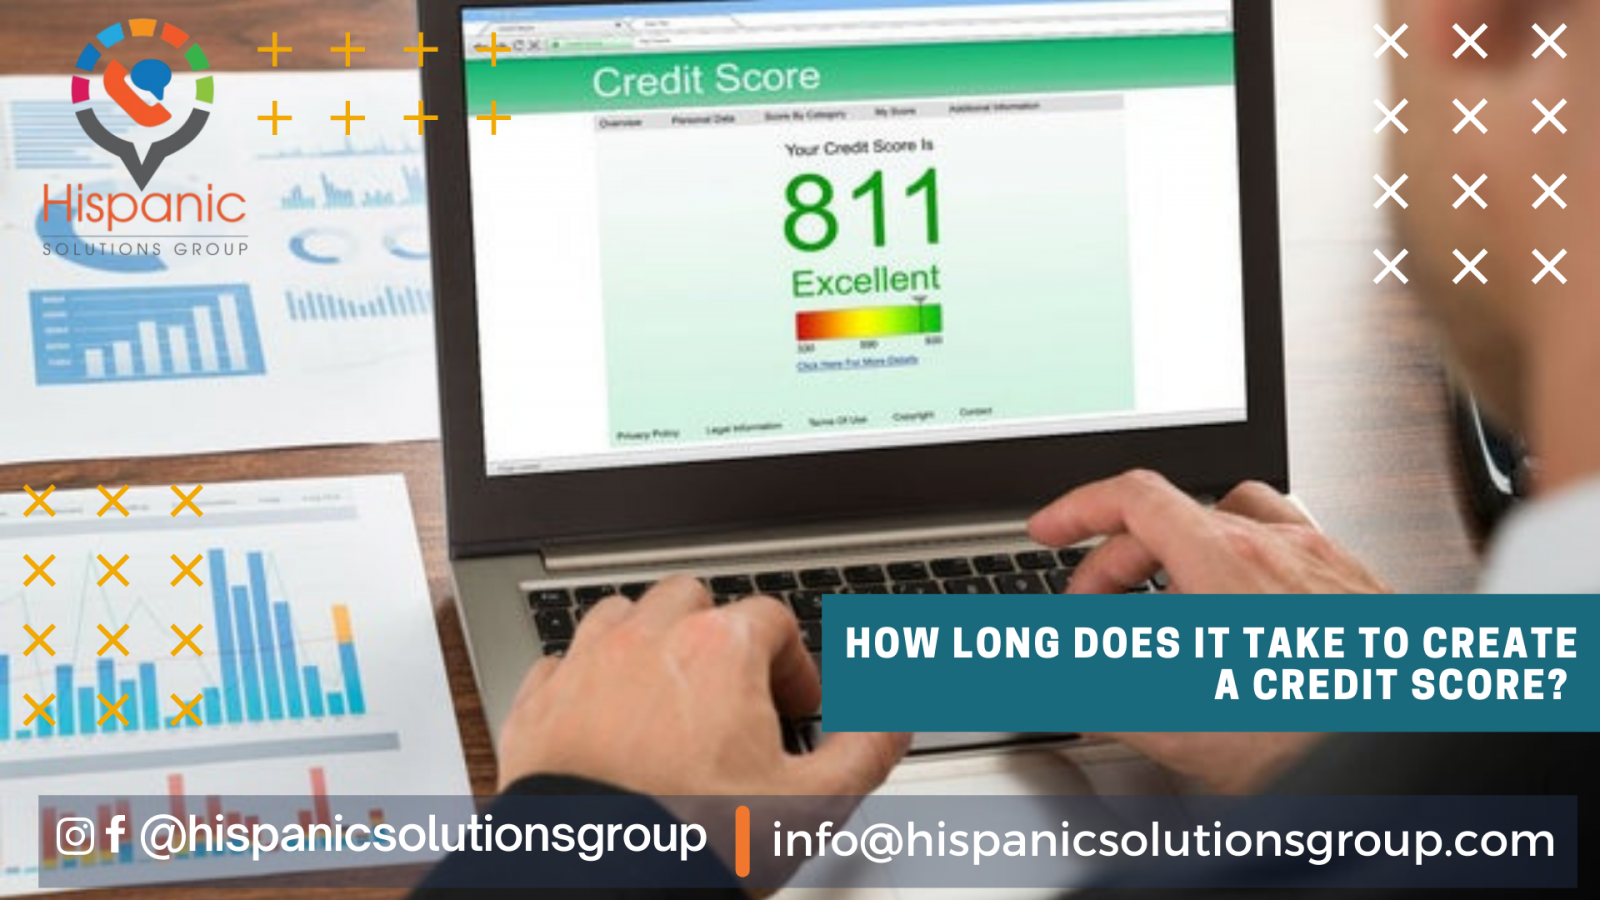 How long does it take to create a credit score?